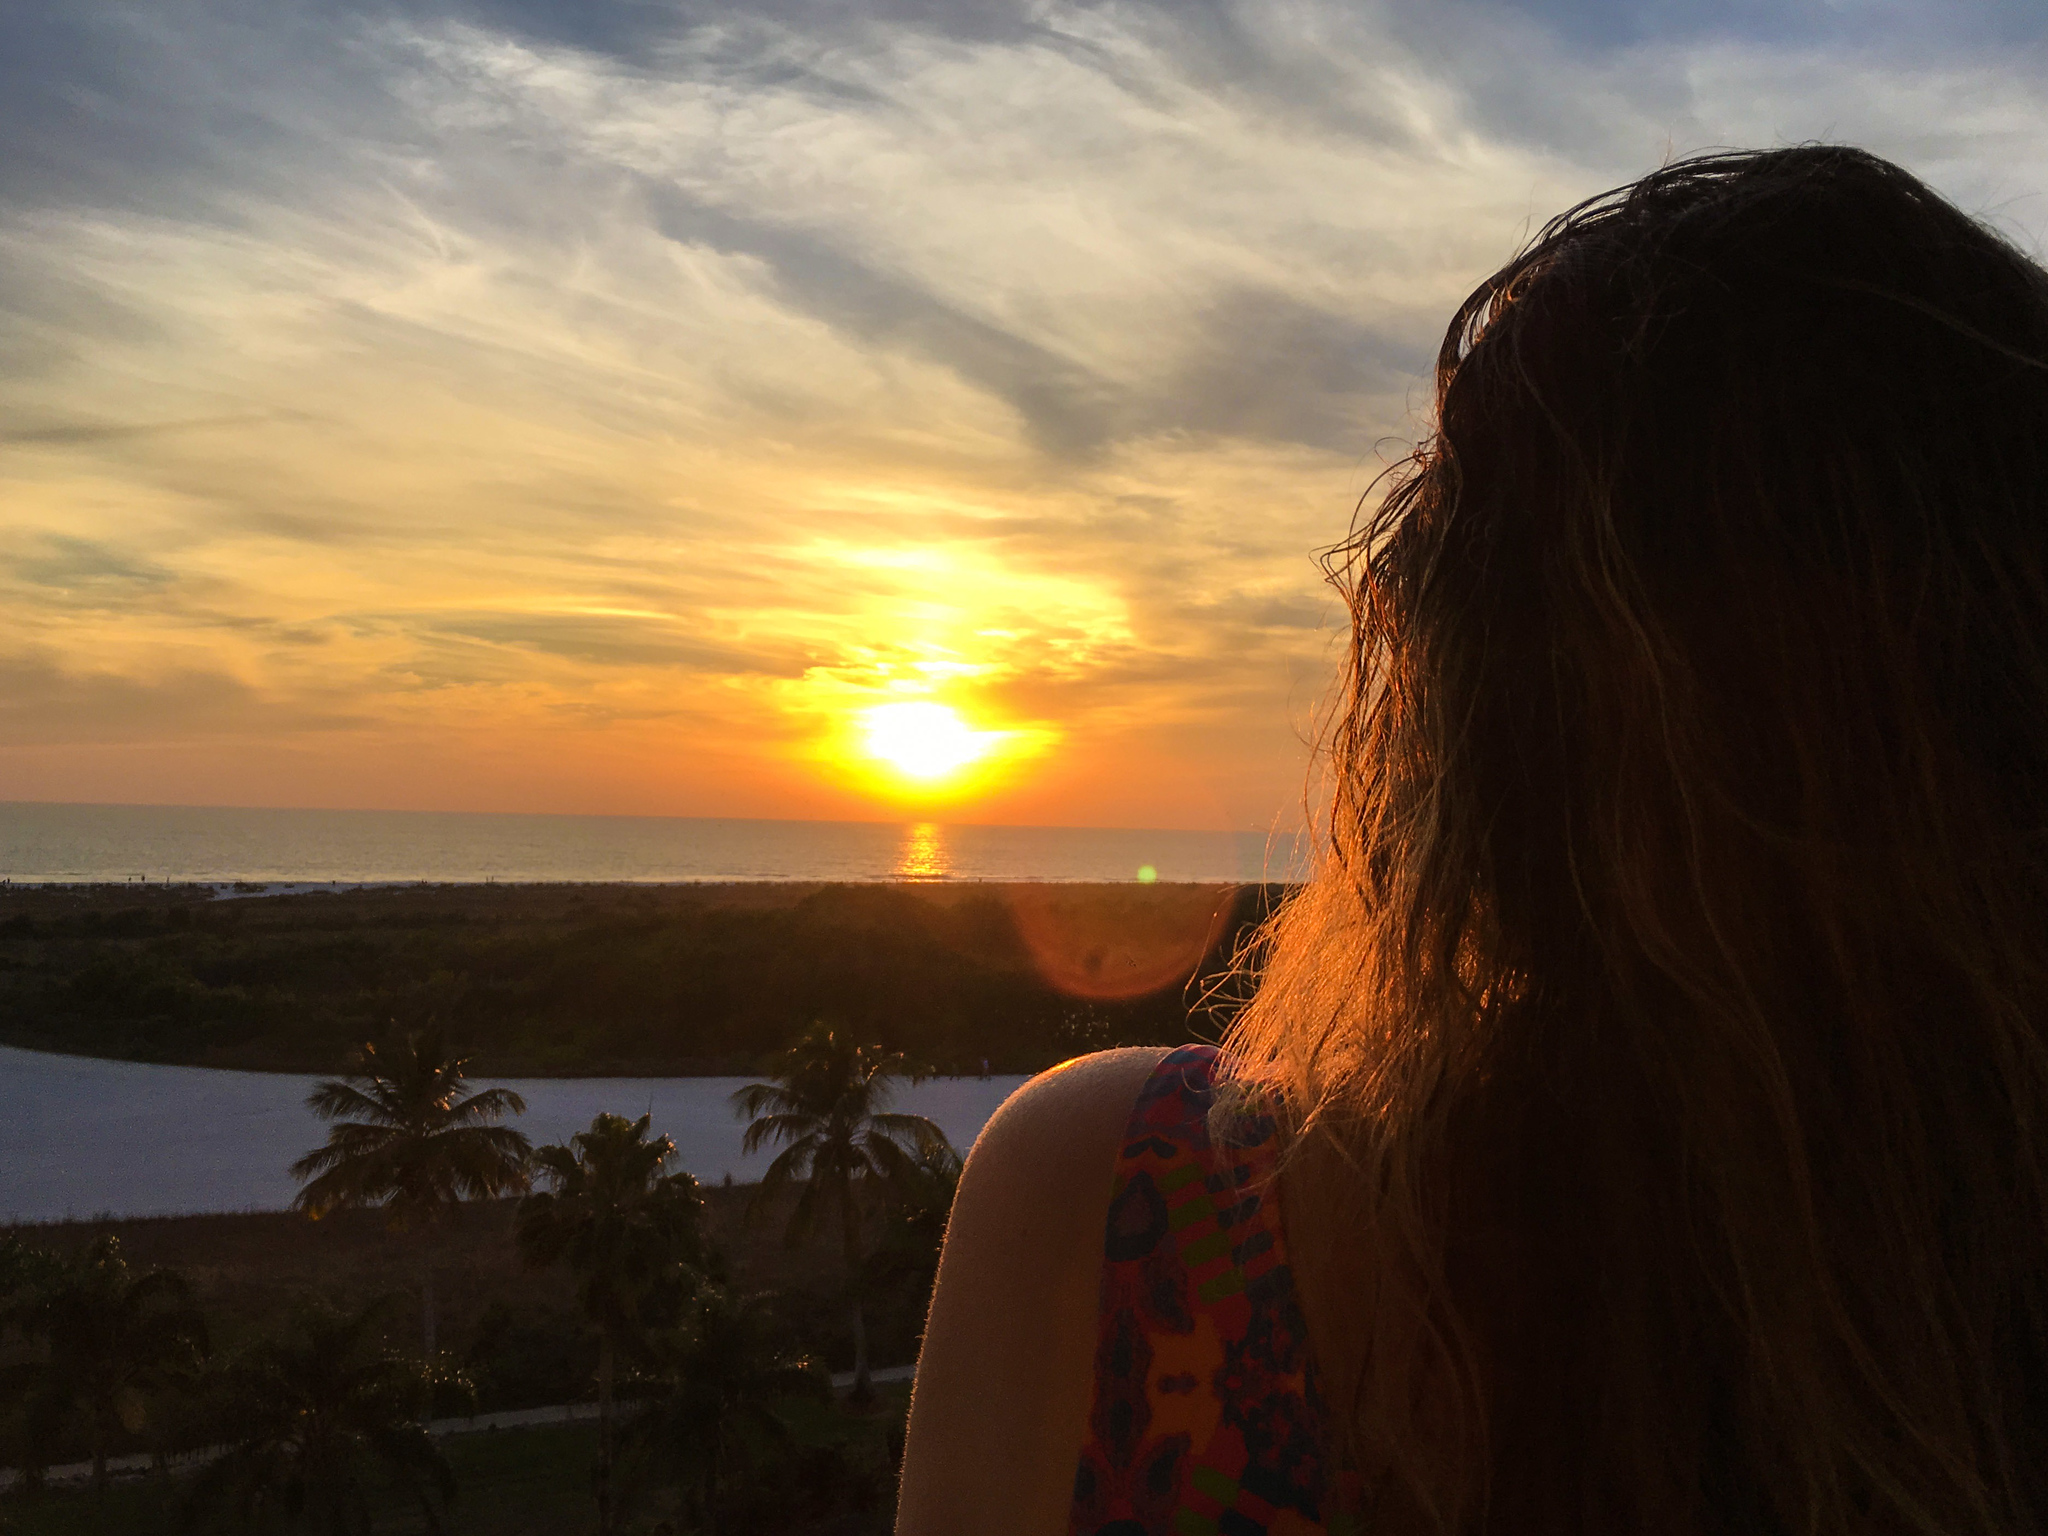 one of the best marco island tips includes seeing the sunset